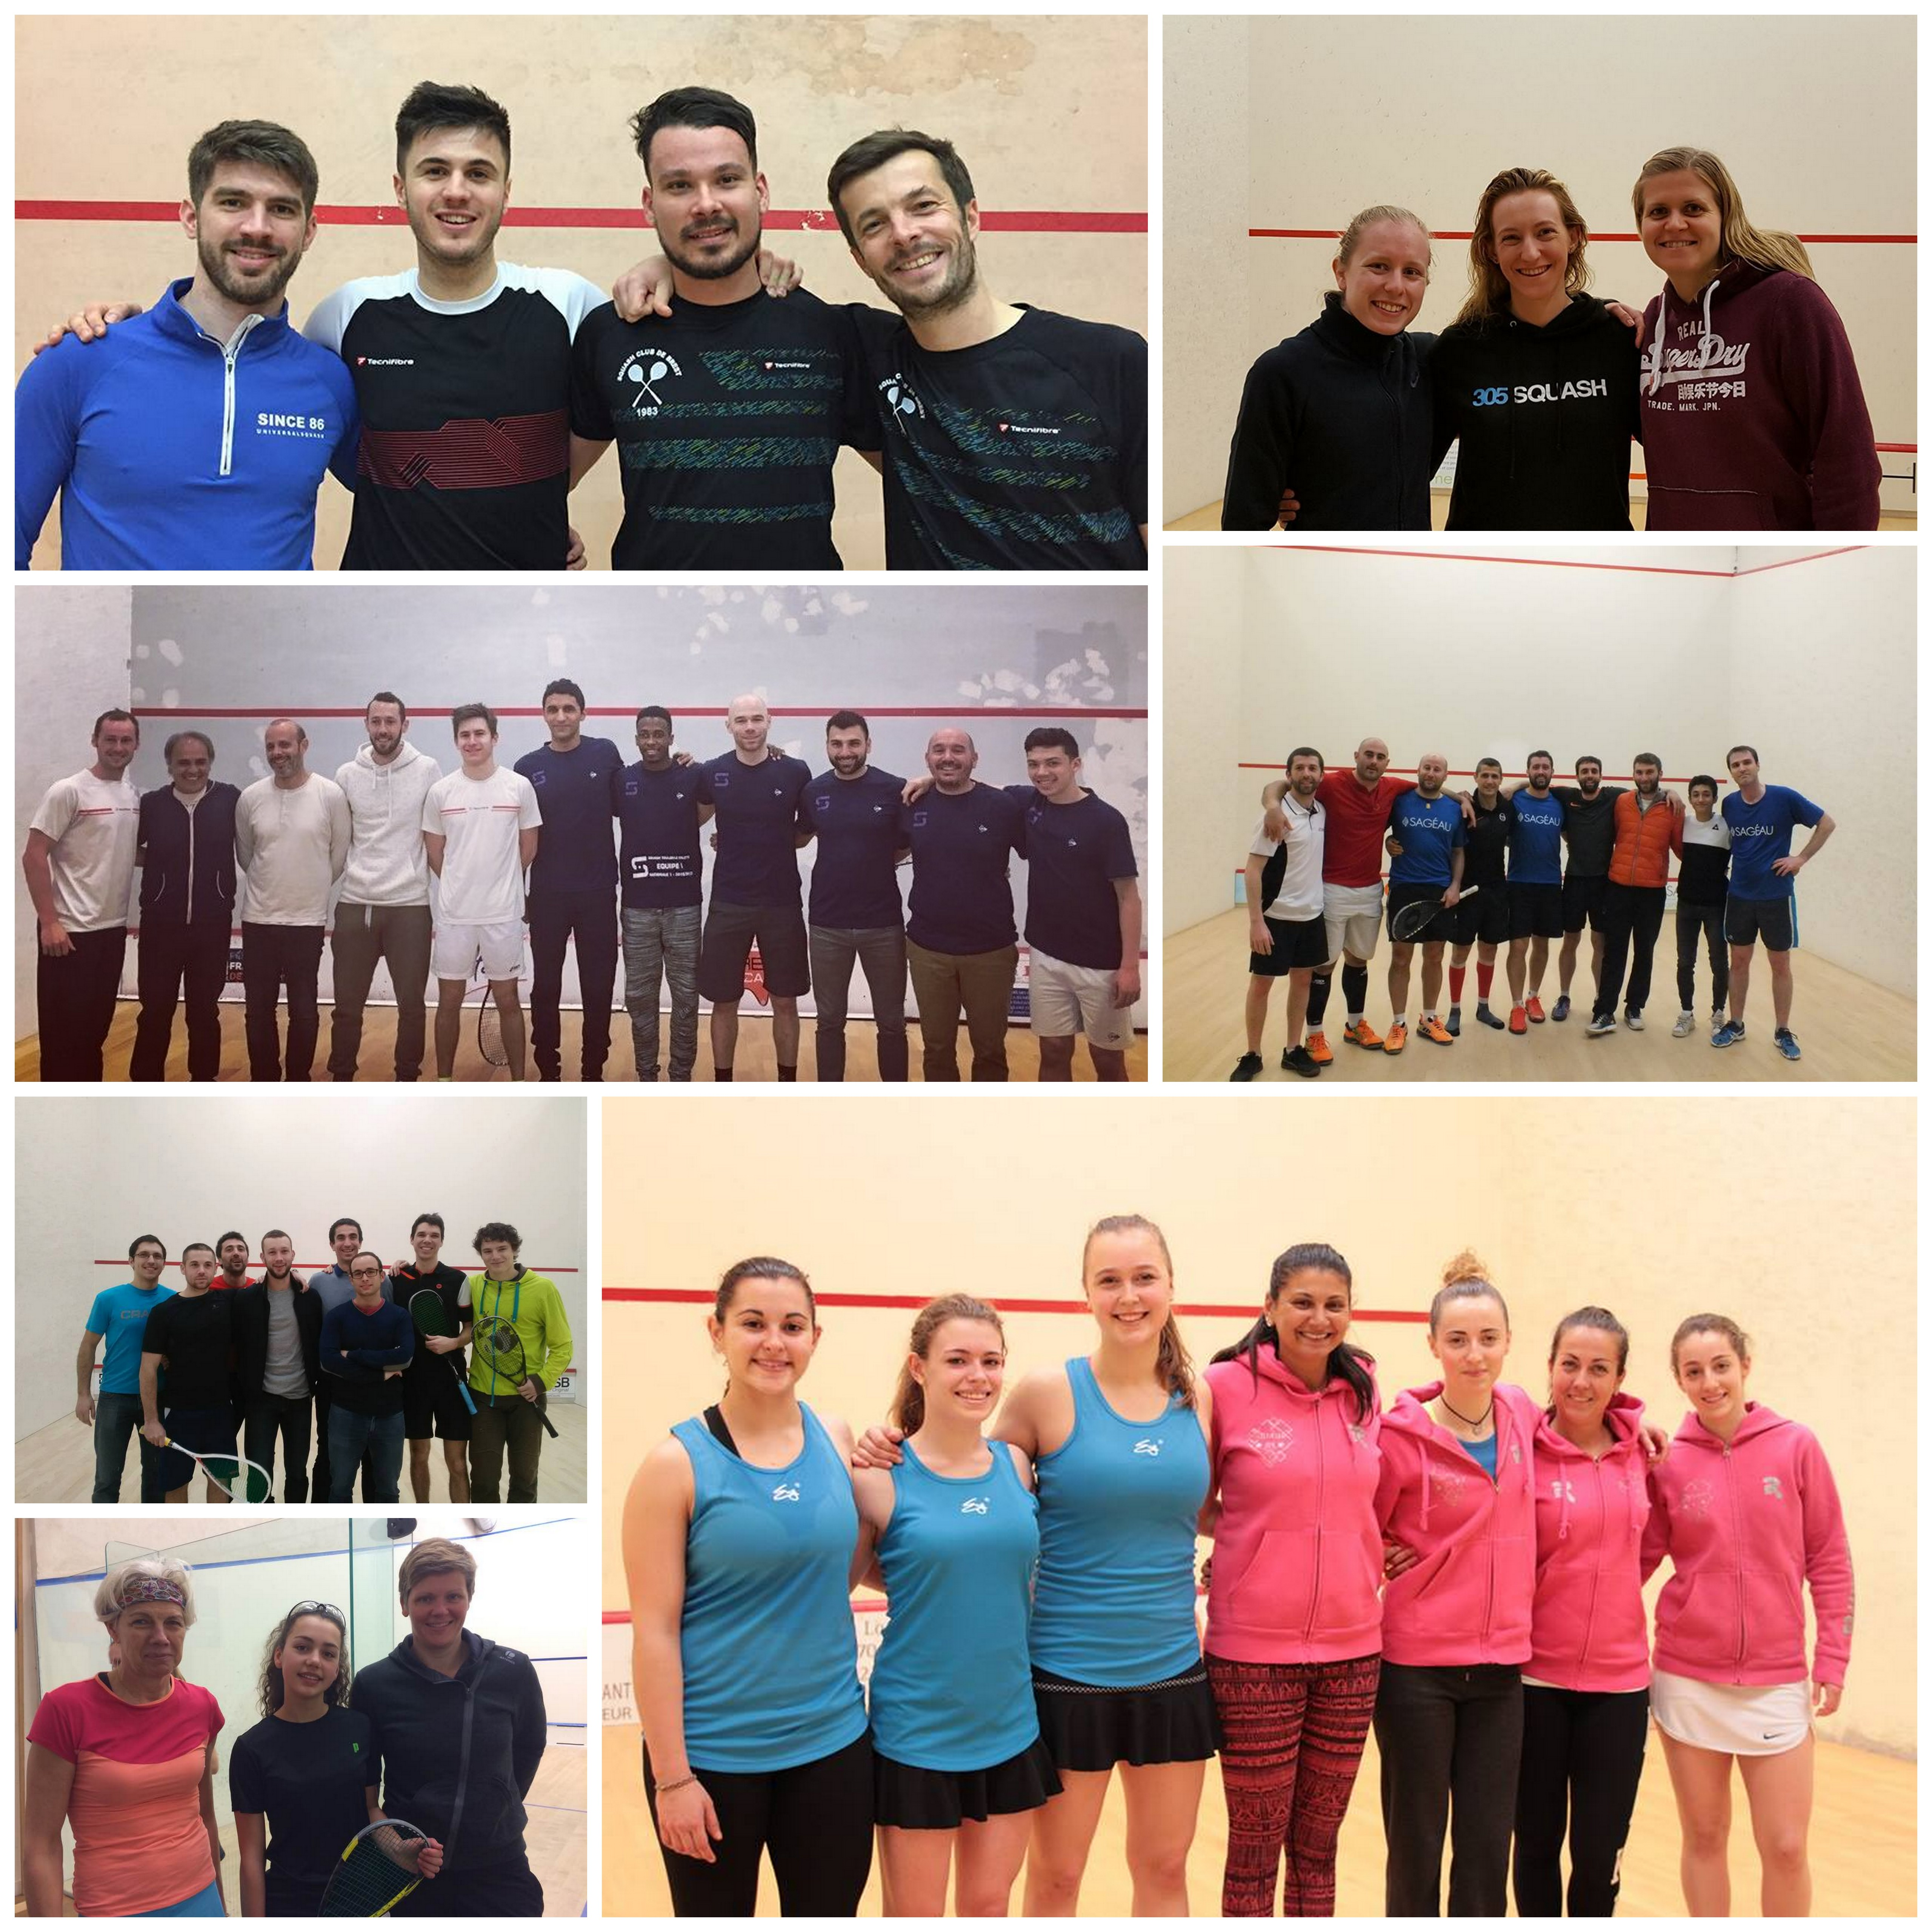 CHAMPIONNAT DE FRANCE INTERCLUBS : QUEL FINAL !